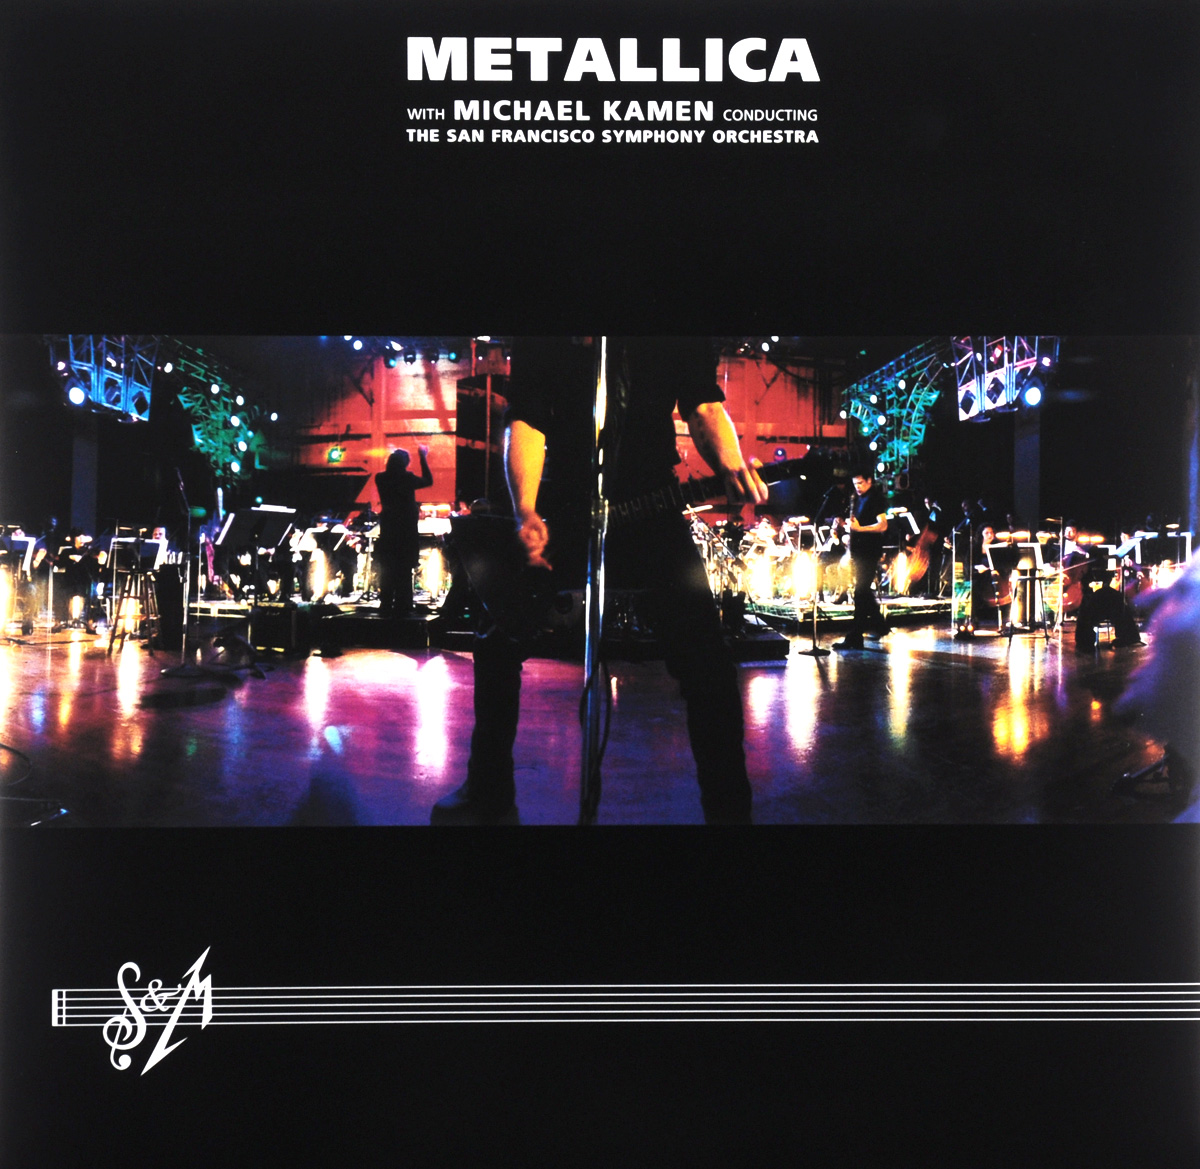 Metallica,Майкл Кэймен,The San Francisco Symphony Orchestra Metallica With Michael Kamen Conducting The San Francisco Symphony Orchestra. S&M (3 LP) metallica майкл кэймен the san francisco symphony orchestra metallica with michael kamen conducting the san francisco symphony orchestra s